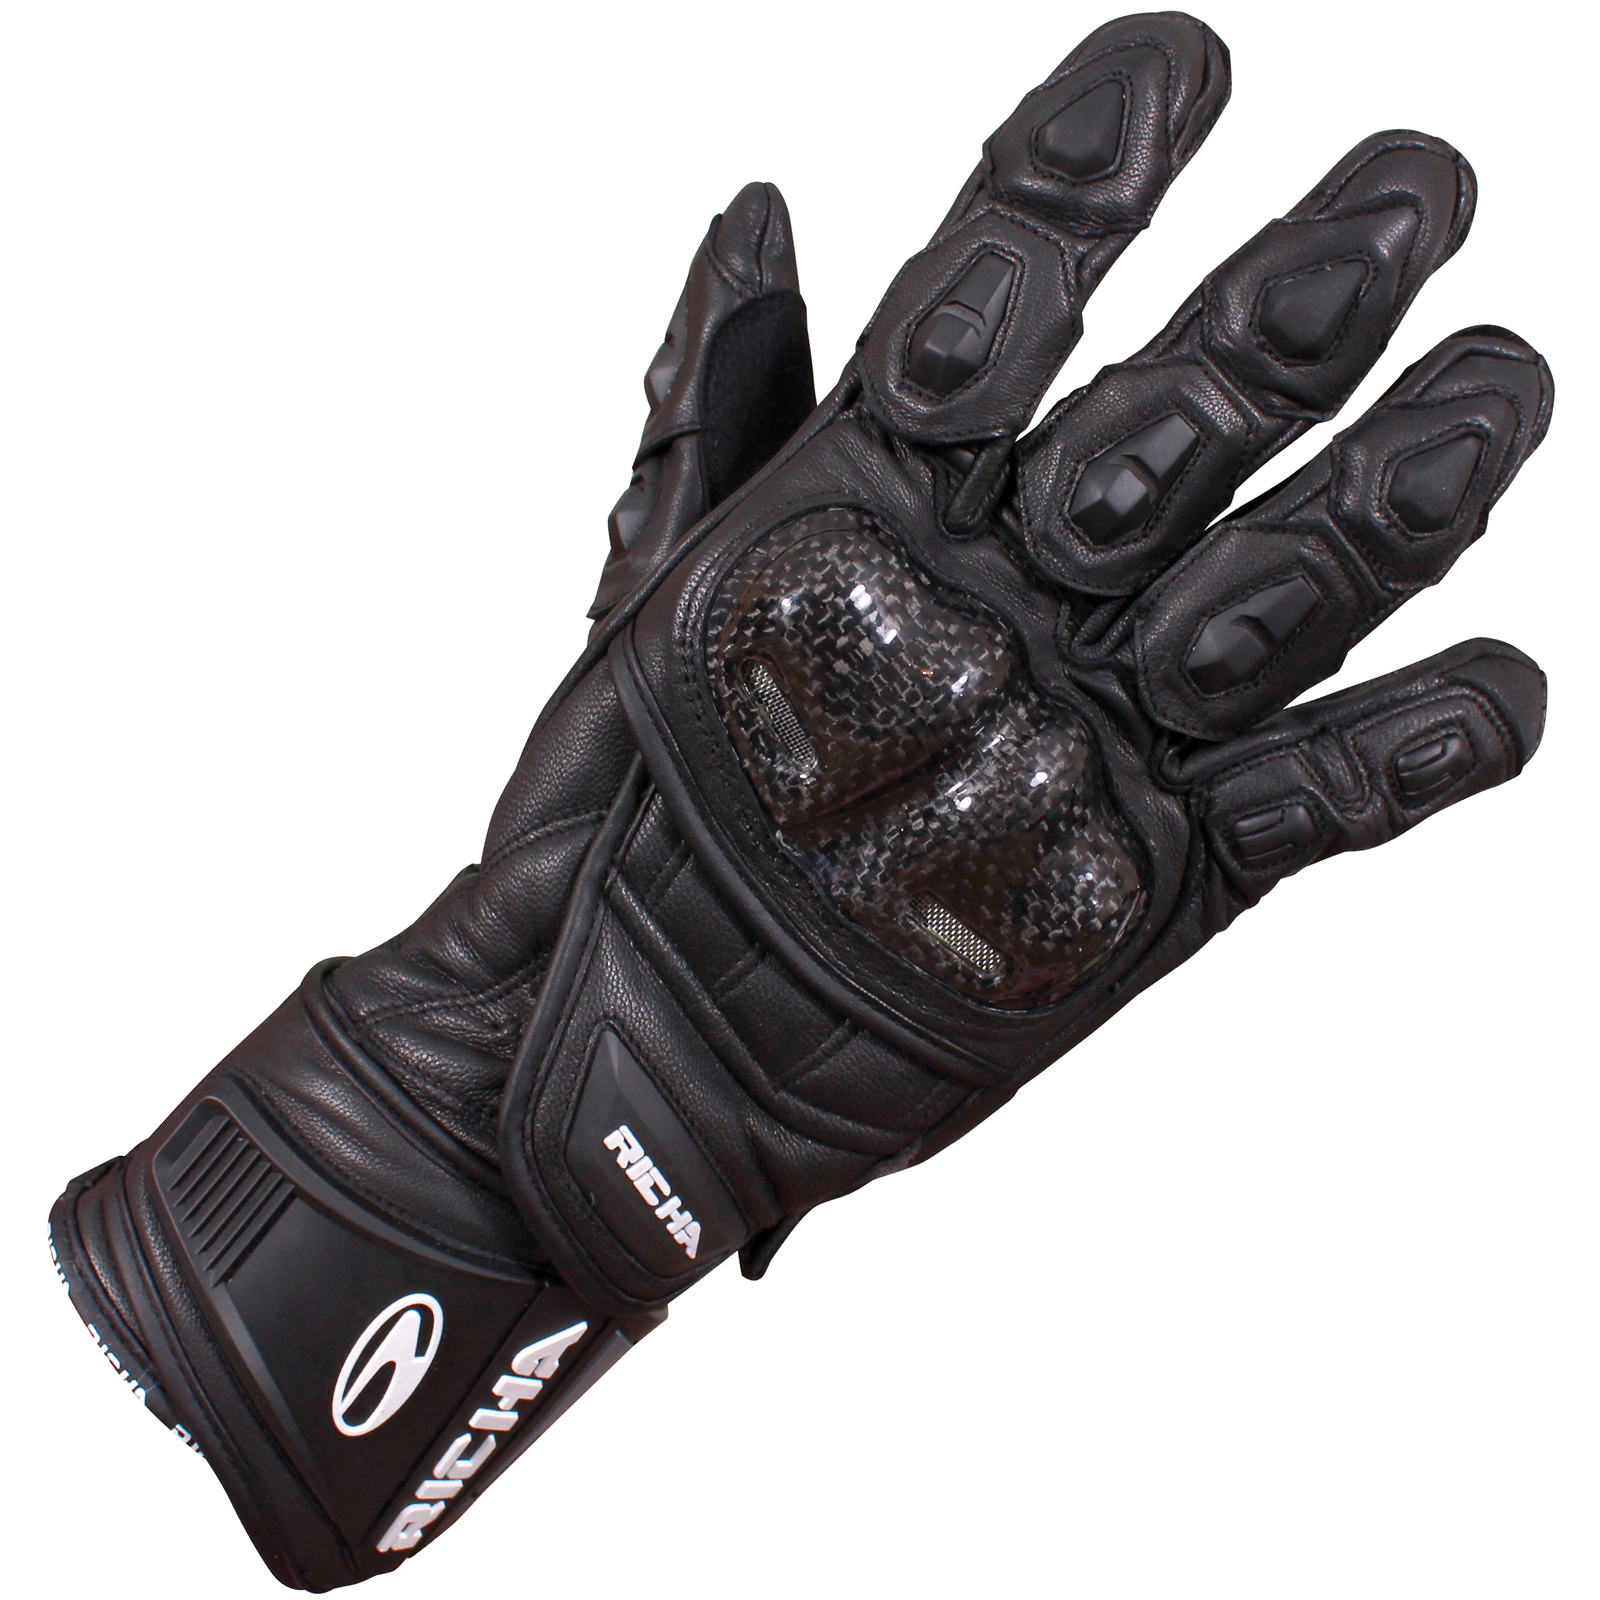 Motorcycle gloves richa - Richa Fire Leather Sports Racing Motorcycle Armoured Carbon